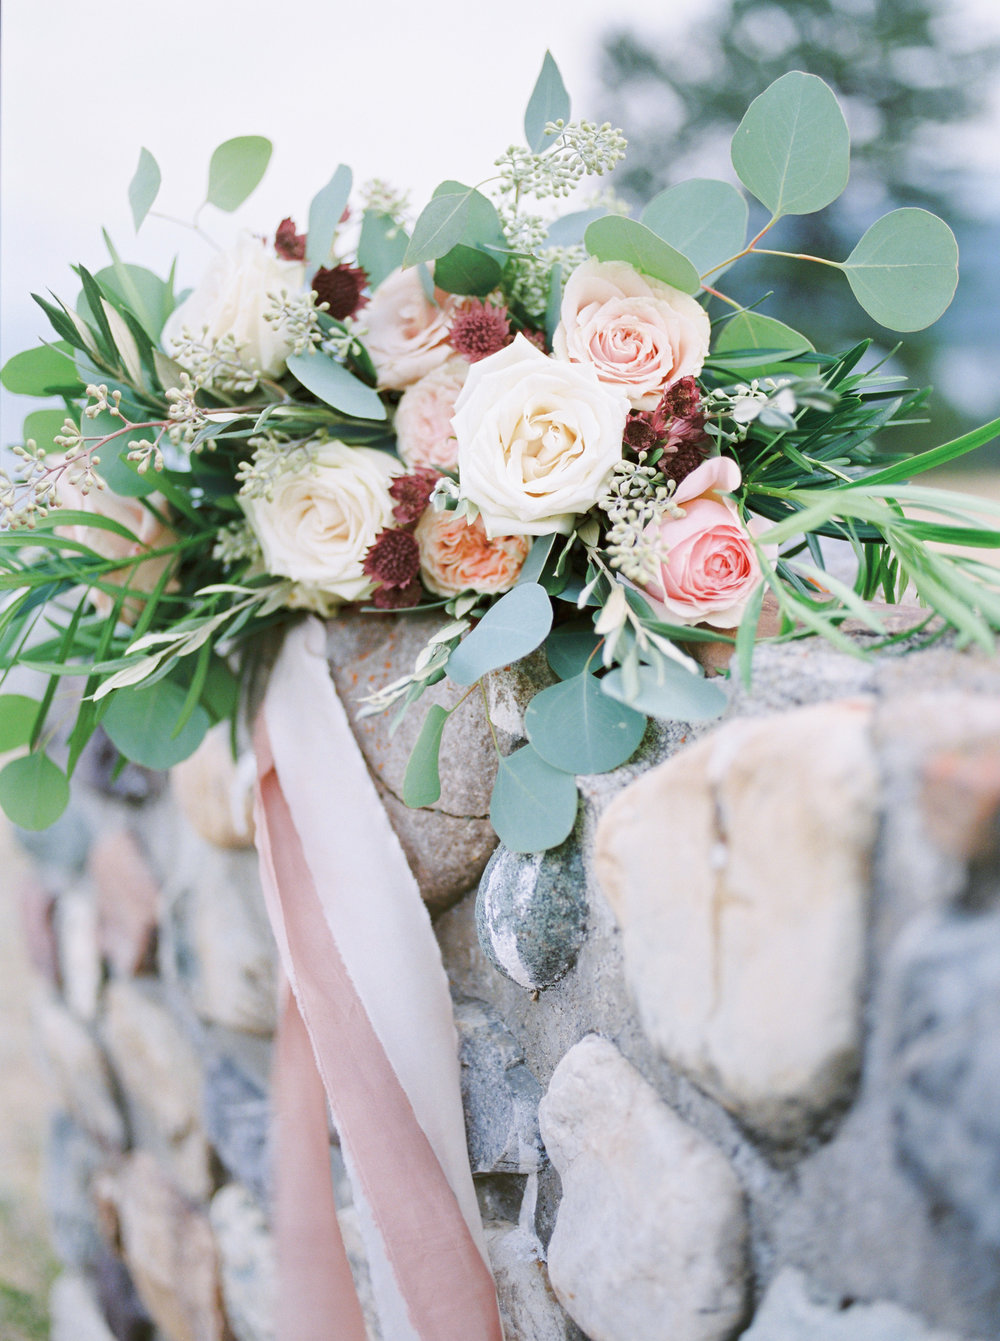 Watercolor Wedding Inspiration - Featured on Bridal Musing